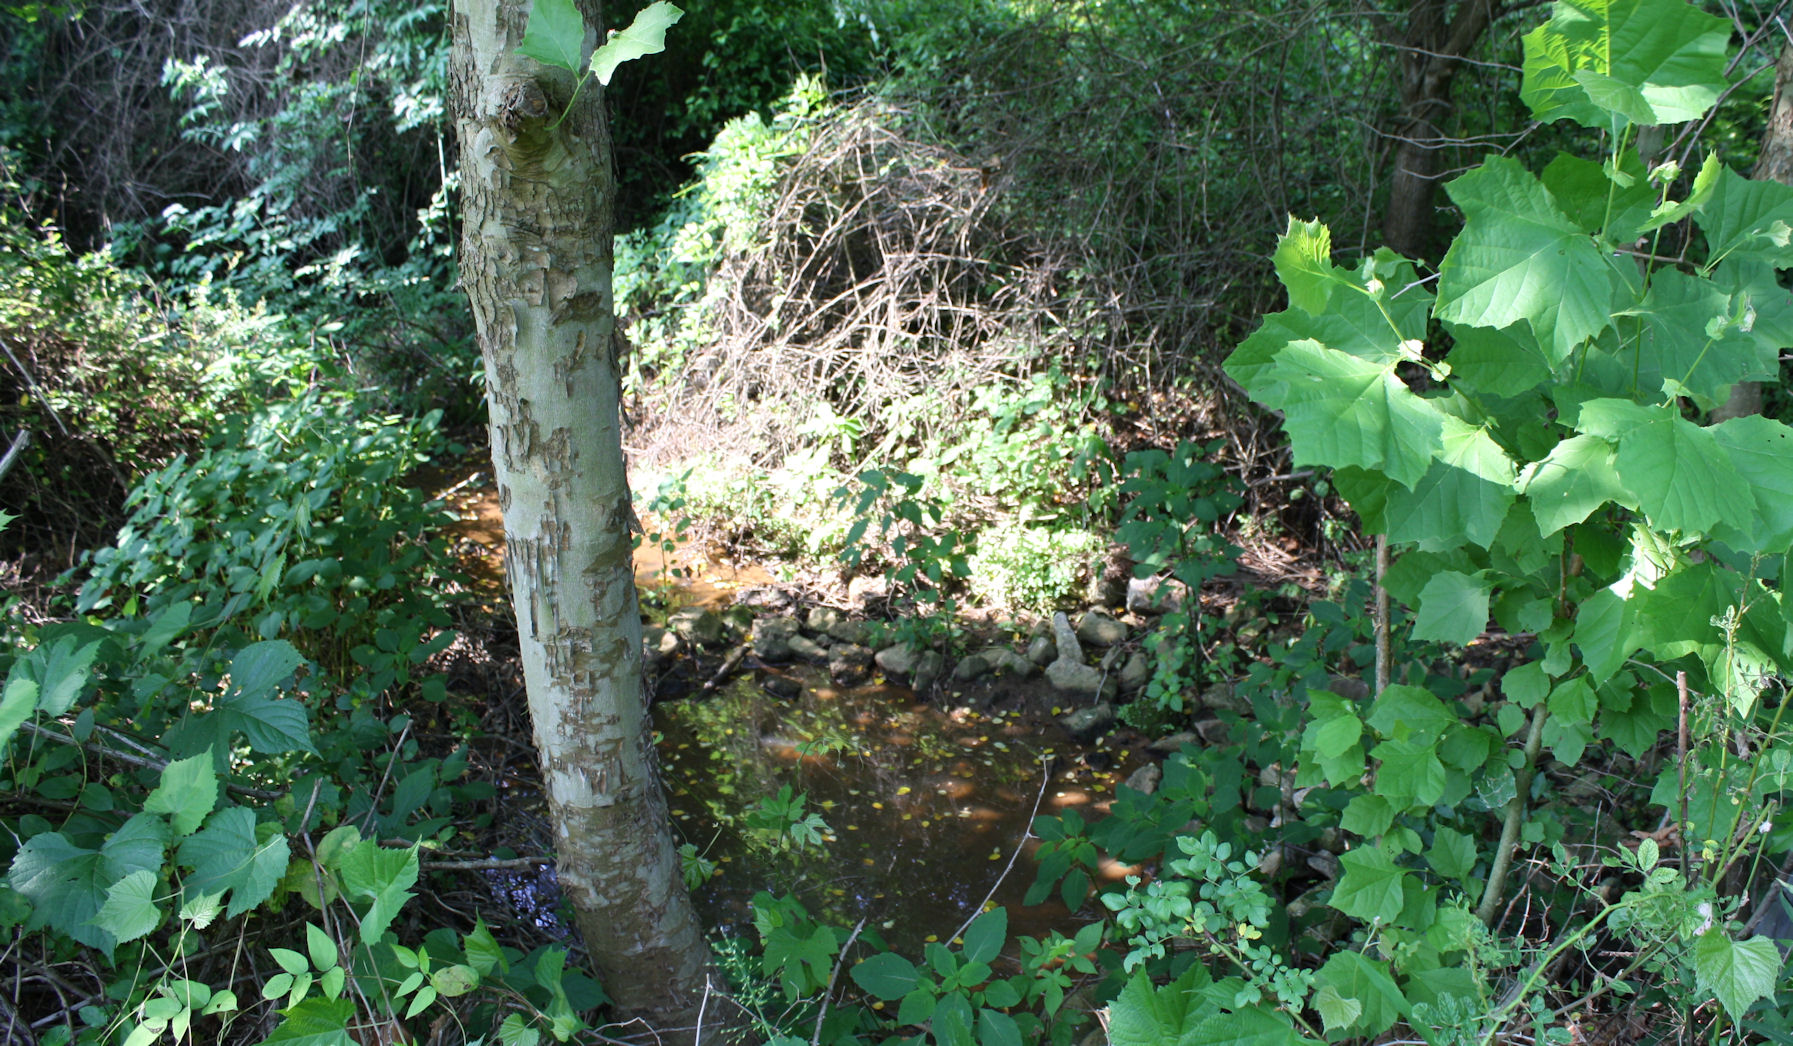 http://johnsonmatel.com/2011/June/forestry/Stream1_with_sycamore.jpg